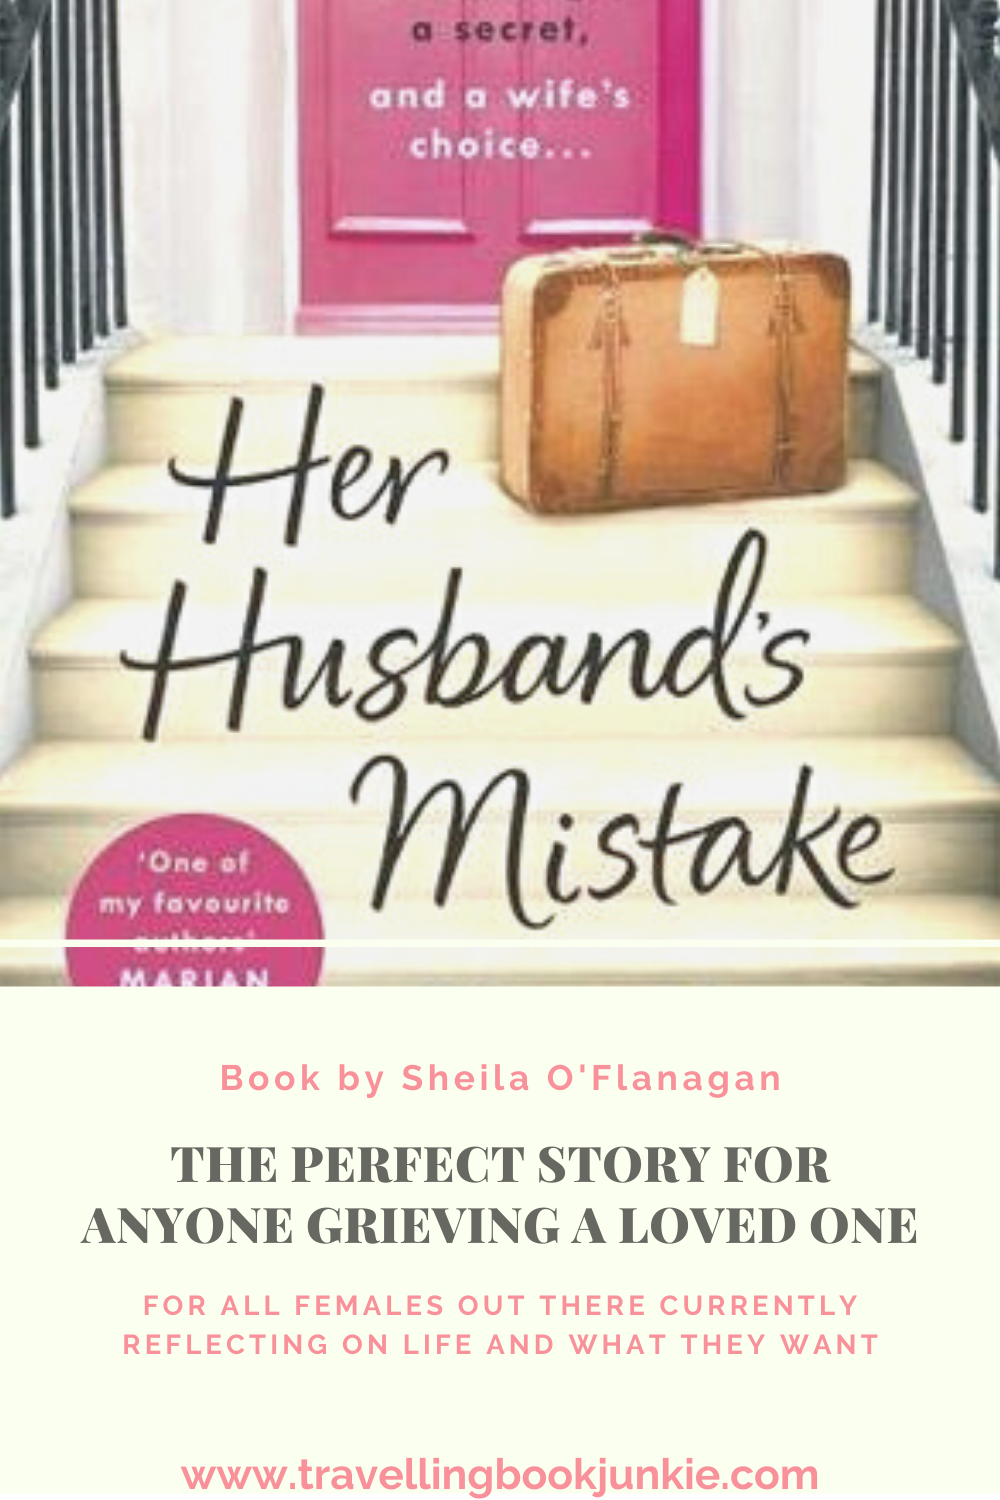 Her Husband's Mistake by Sheila O'Flanagan is a story of lose, grieving and self-realisation that life isn't what you hoped for. For a full review visit @tbookjunkie